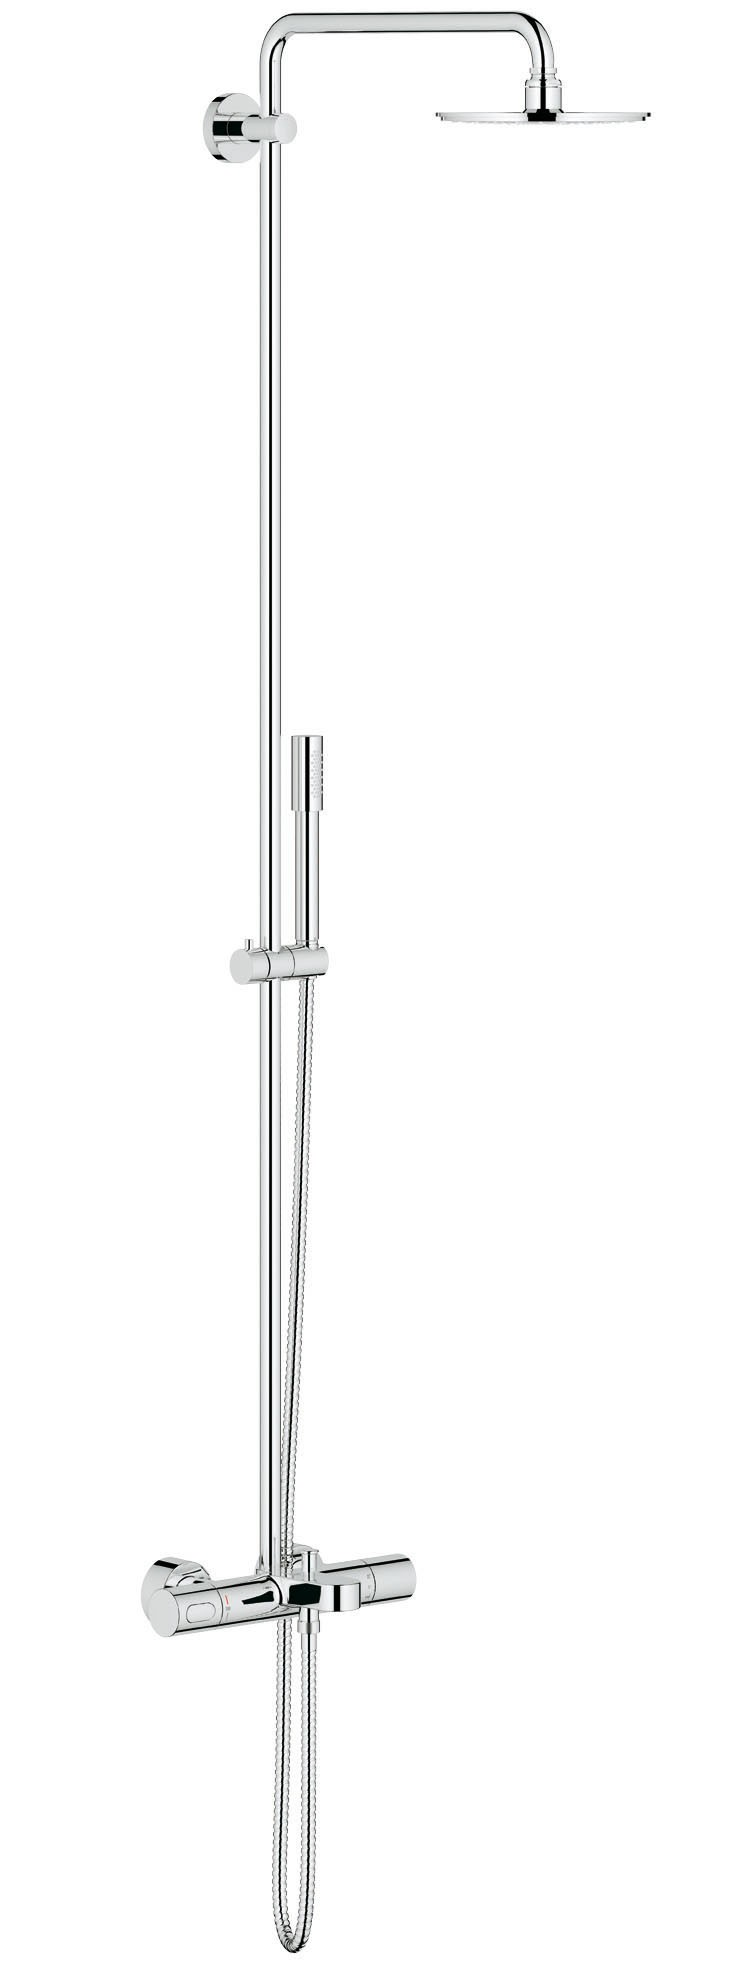 Grohe 27641000 Rainshower, хром (27641000)